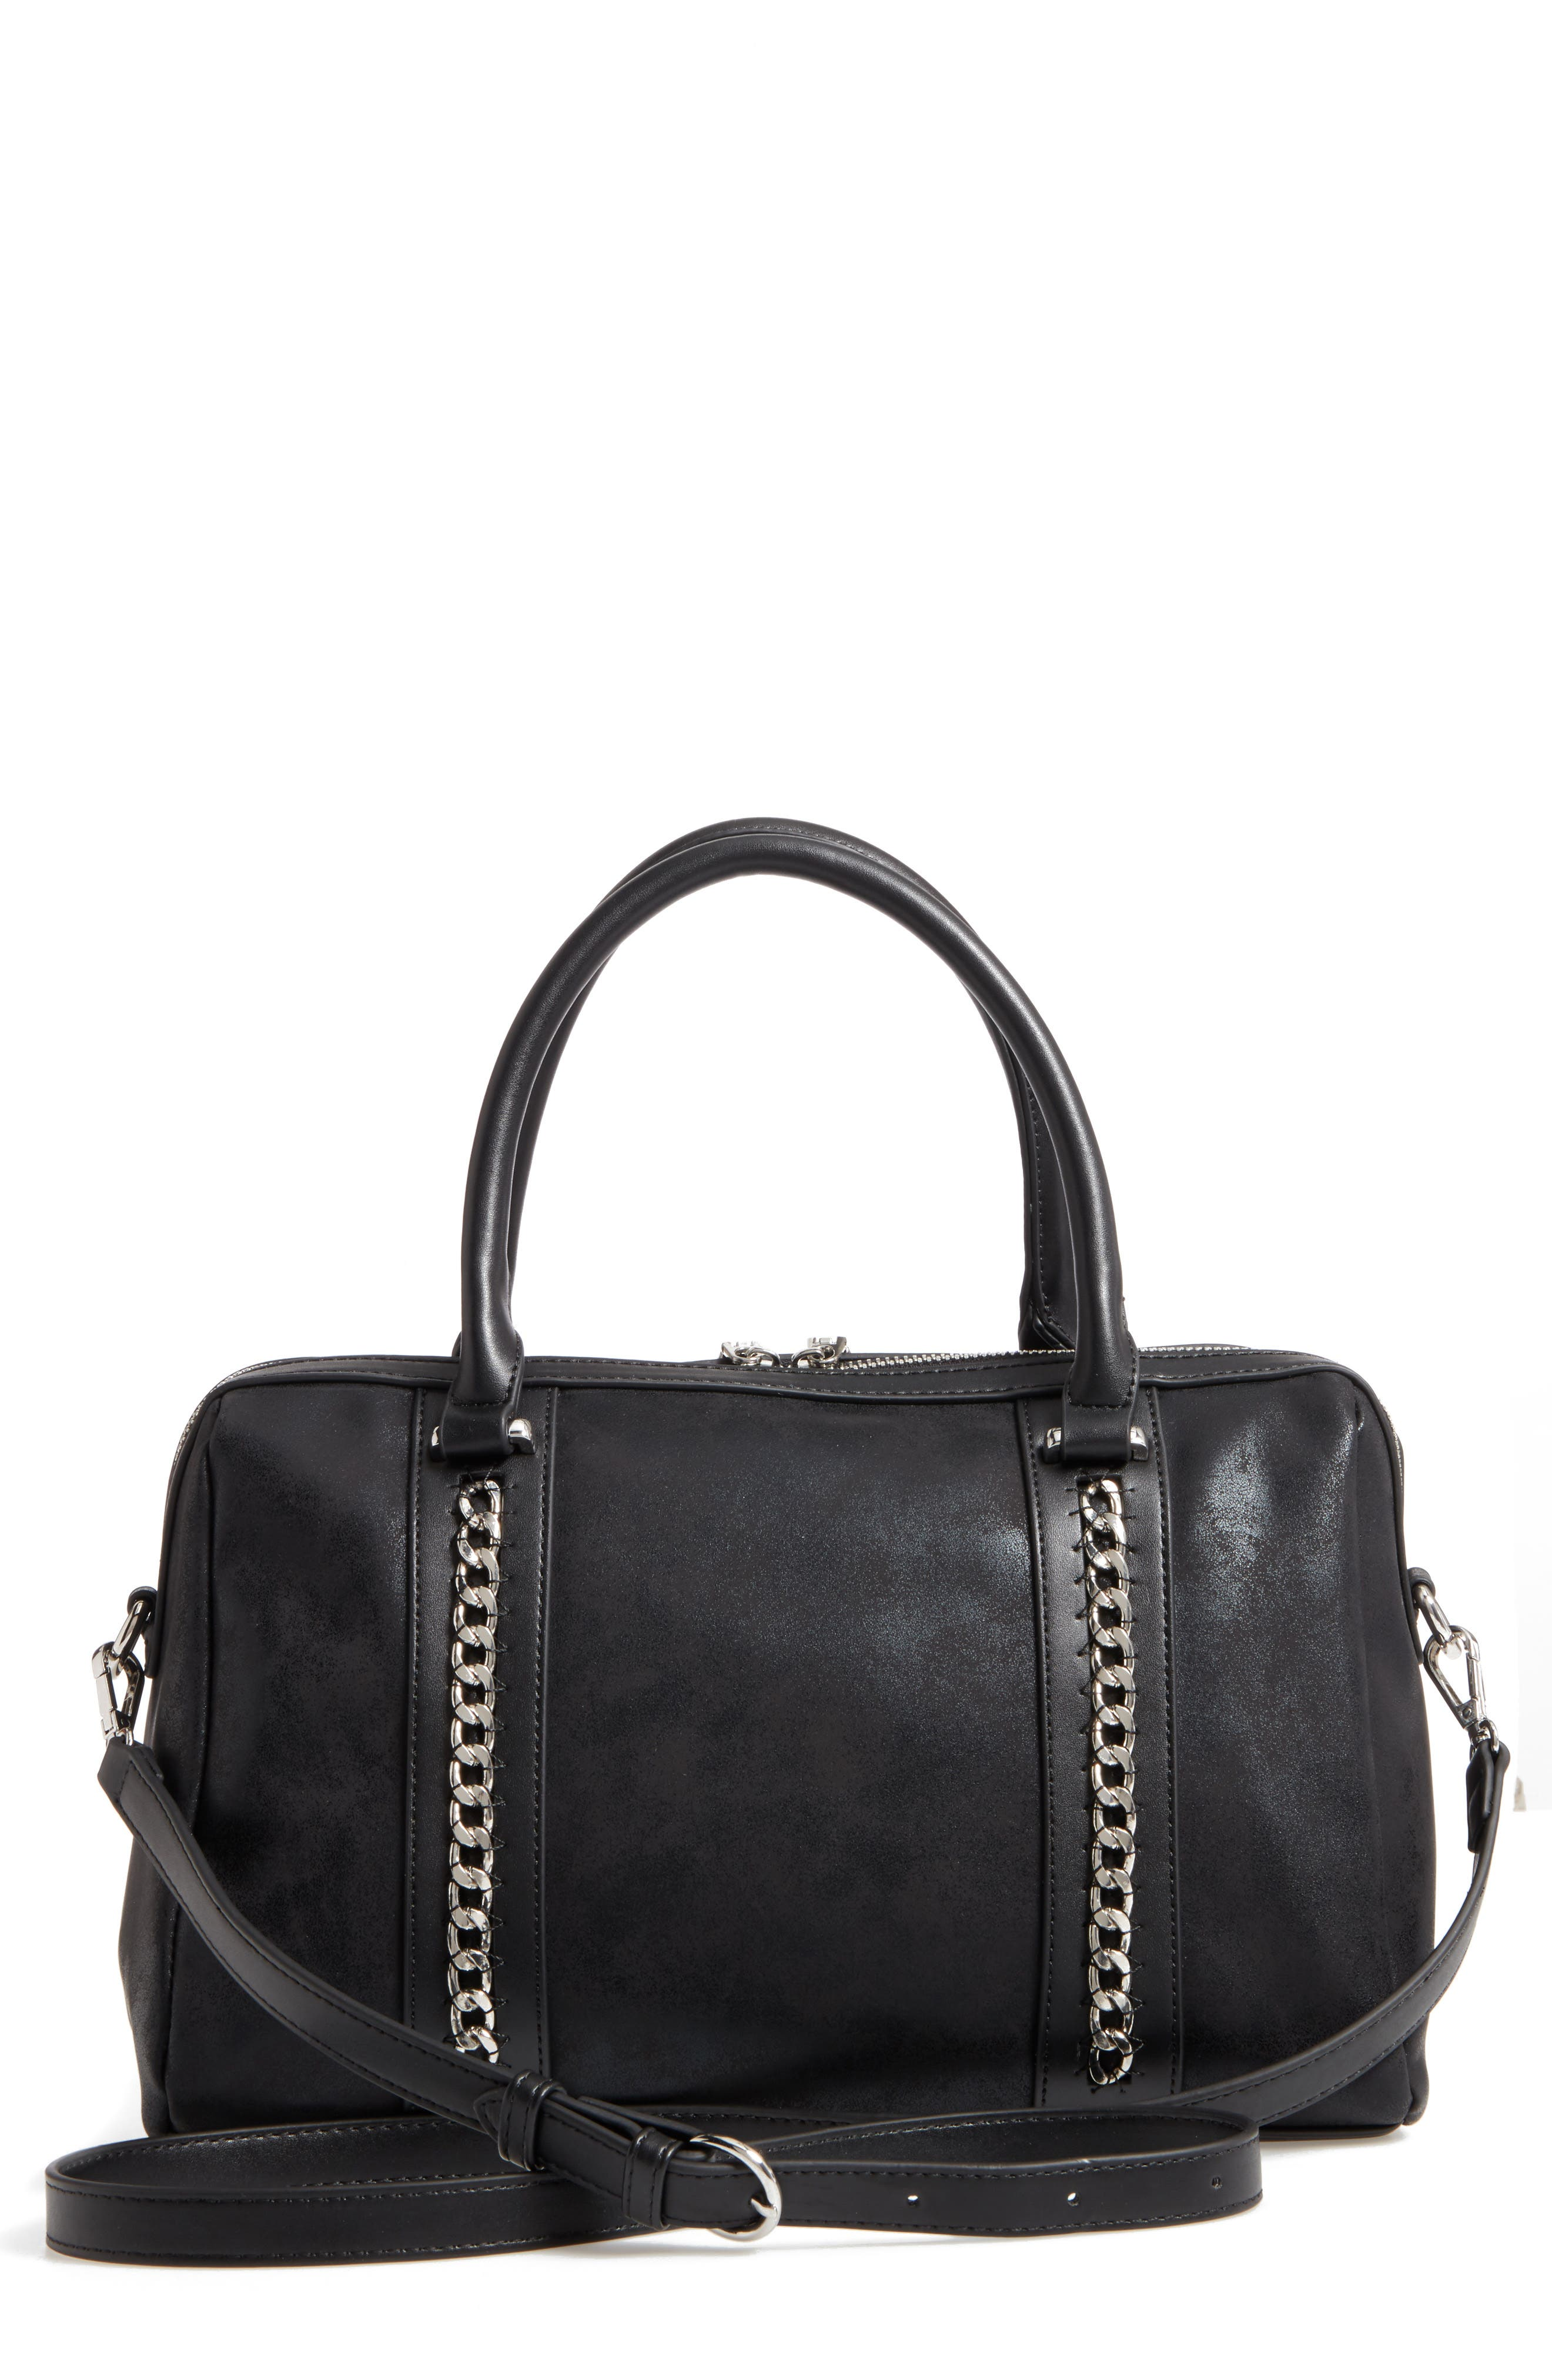 Alternate Image 1 Selected - Chelsea28 Karlie Faux Leather Satchel